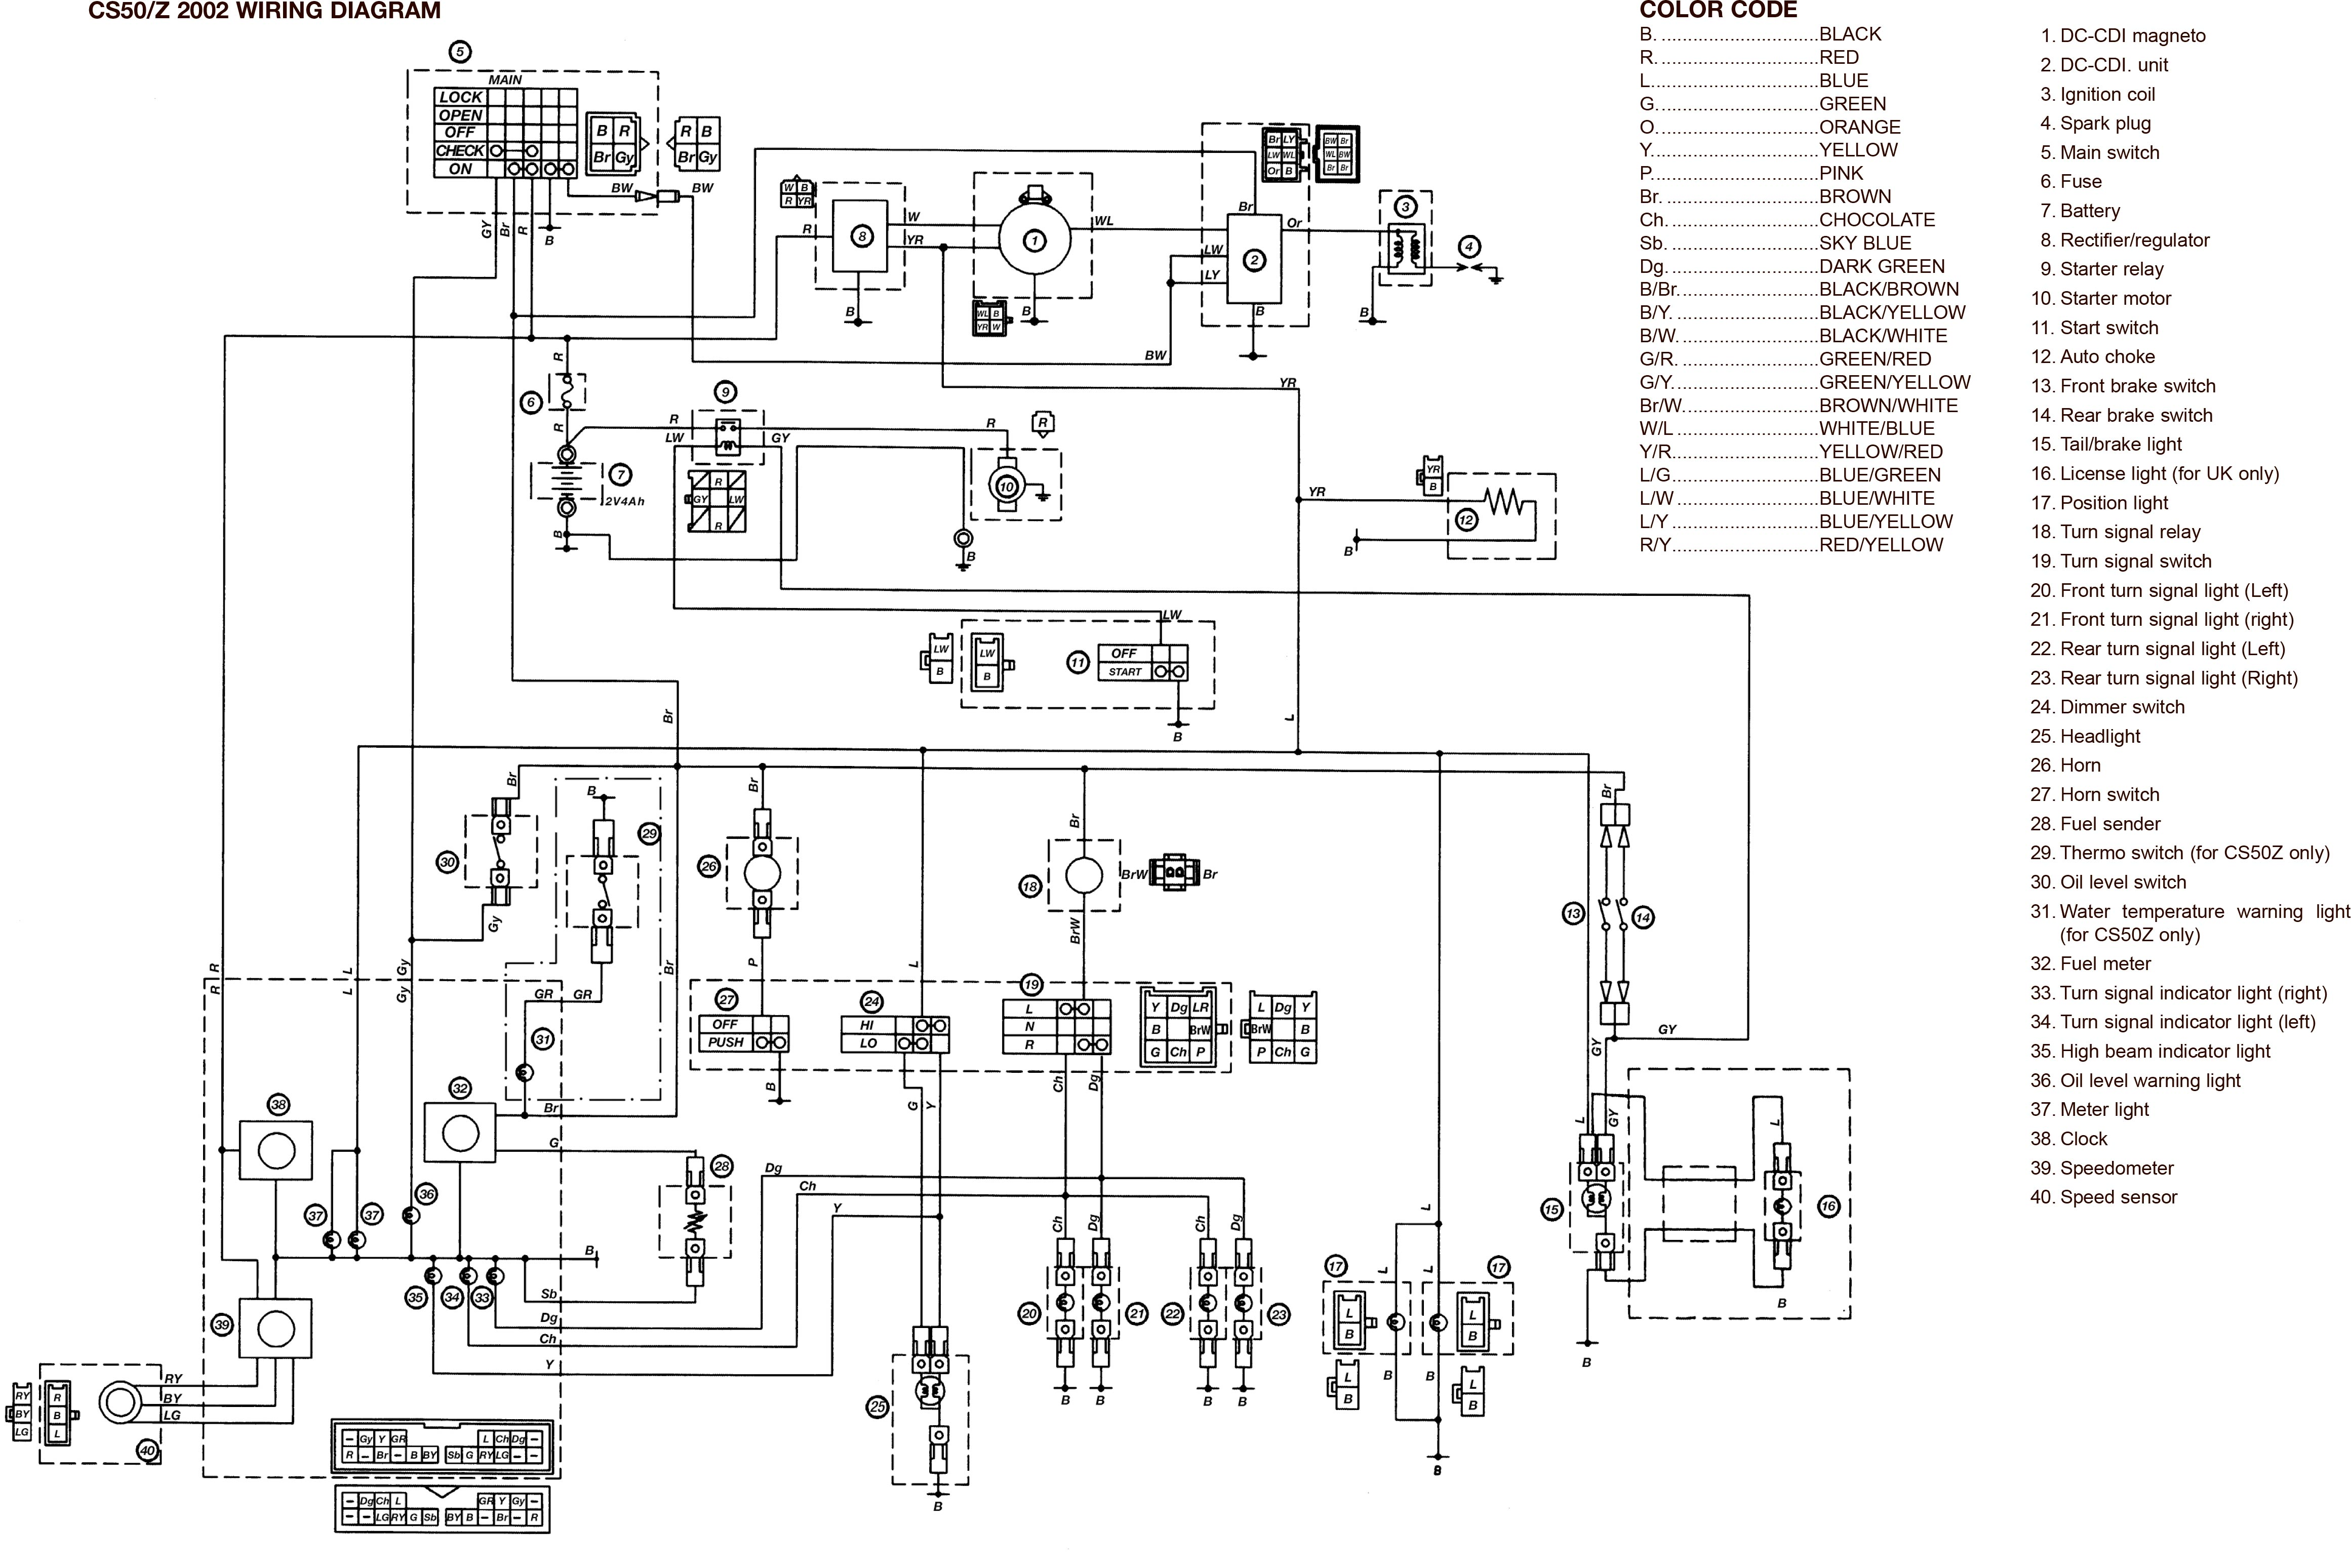 Wiring Diagram For 50cc Moped And Engine Verucci Scooter Additionally Kazuma 150cc Likewise Carb Hose